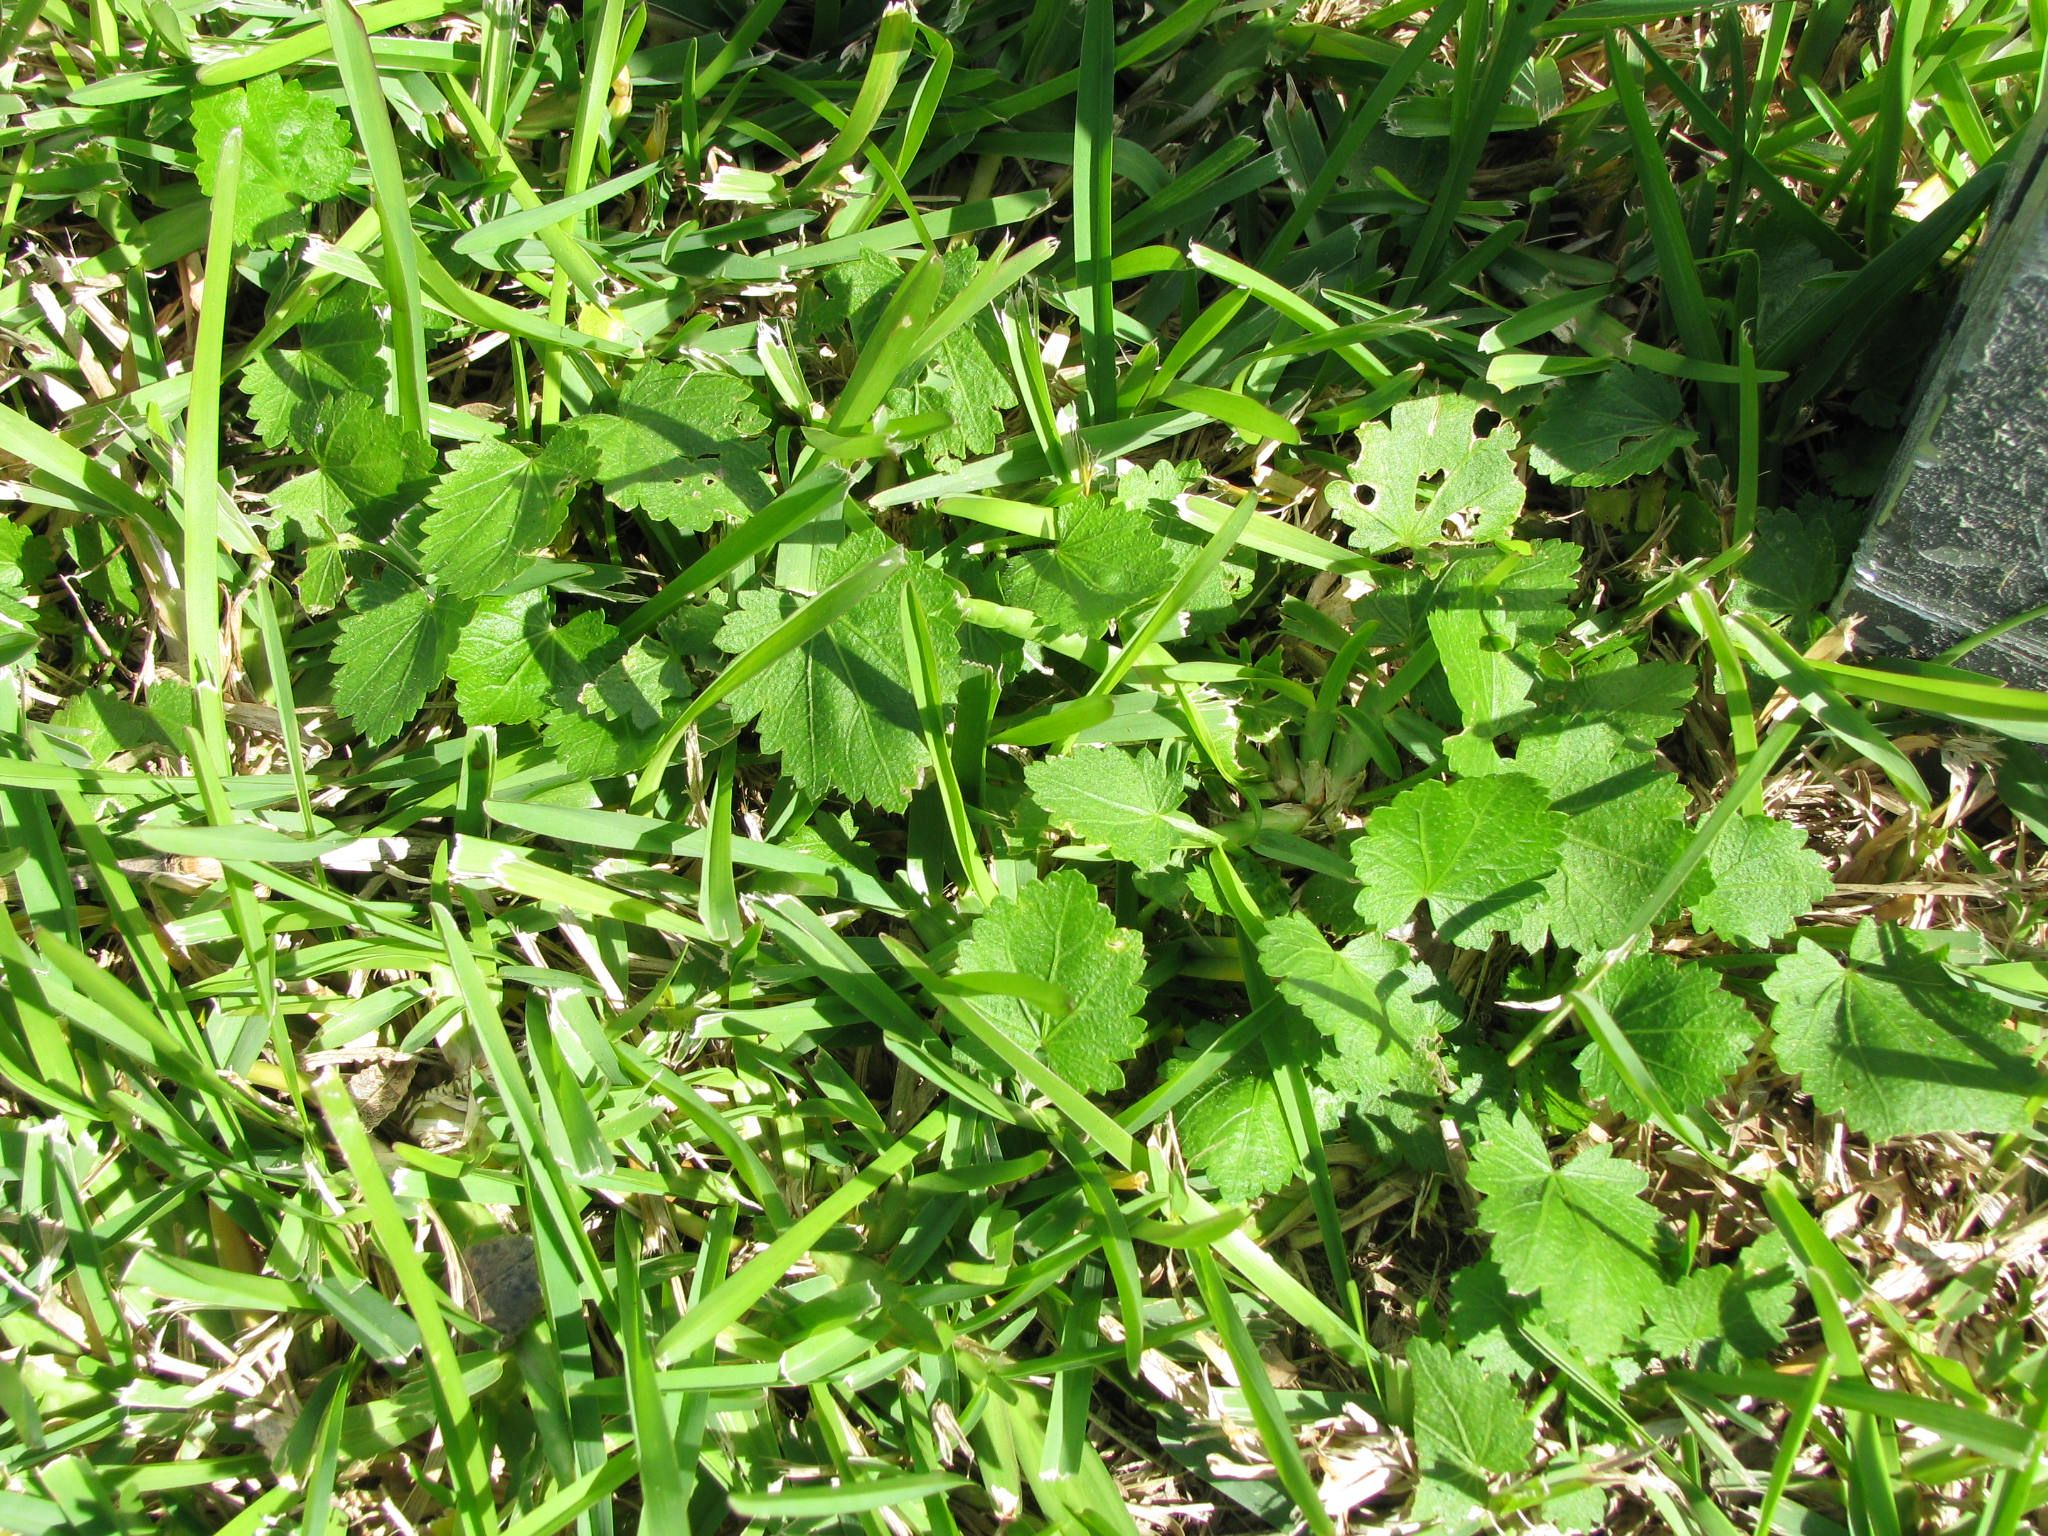 Bristly mallow identifying weeds pinterest lawn care